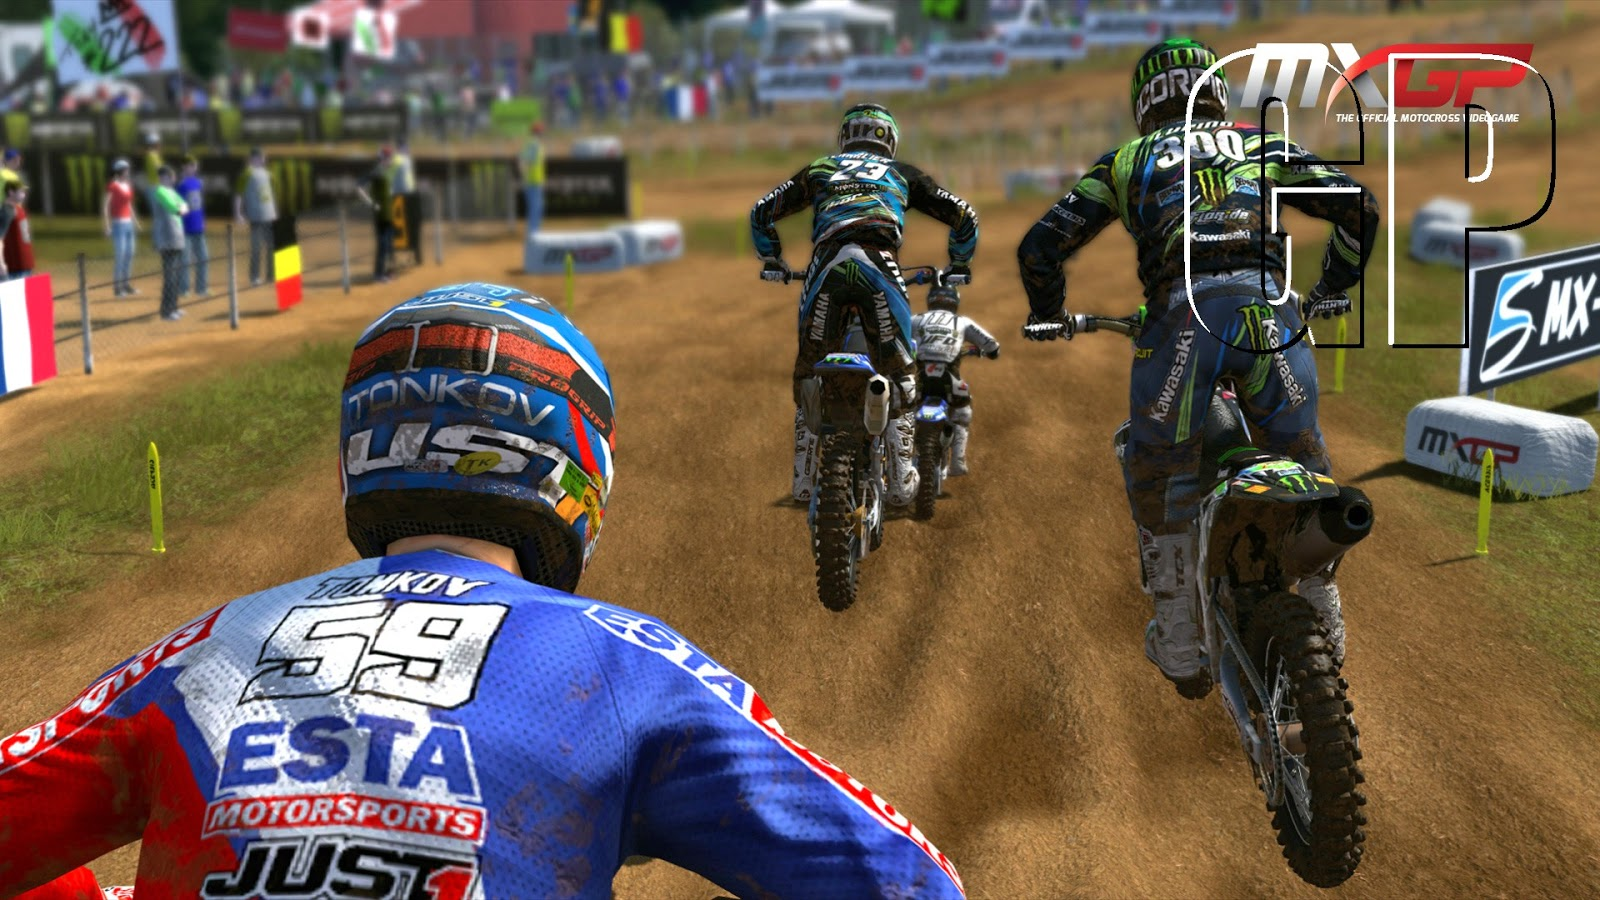 Download MXGP: The Official Motocross Videogame Free PC Games